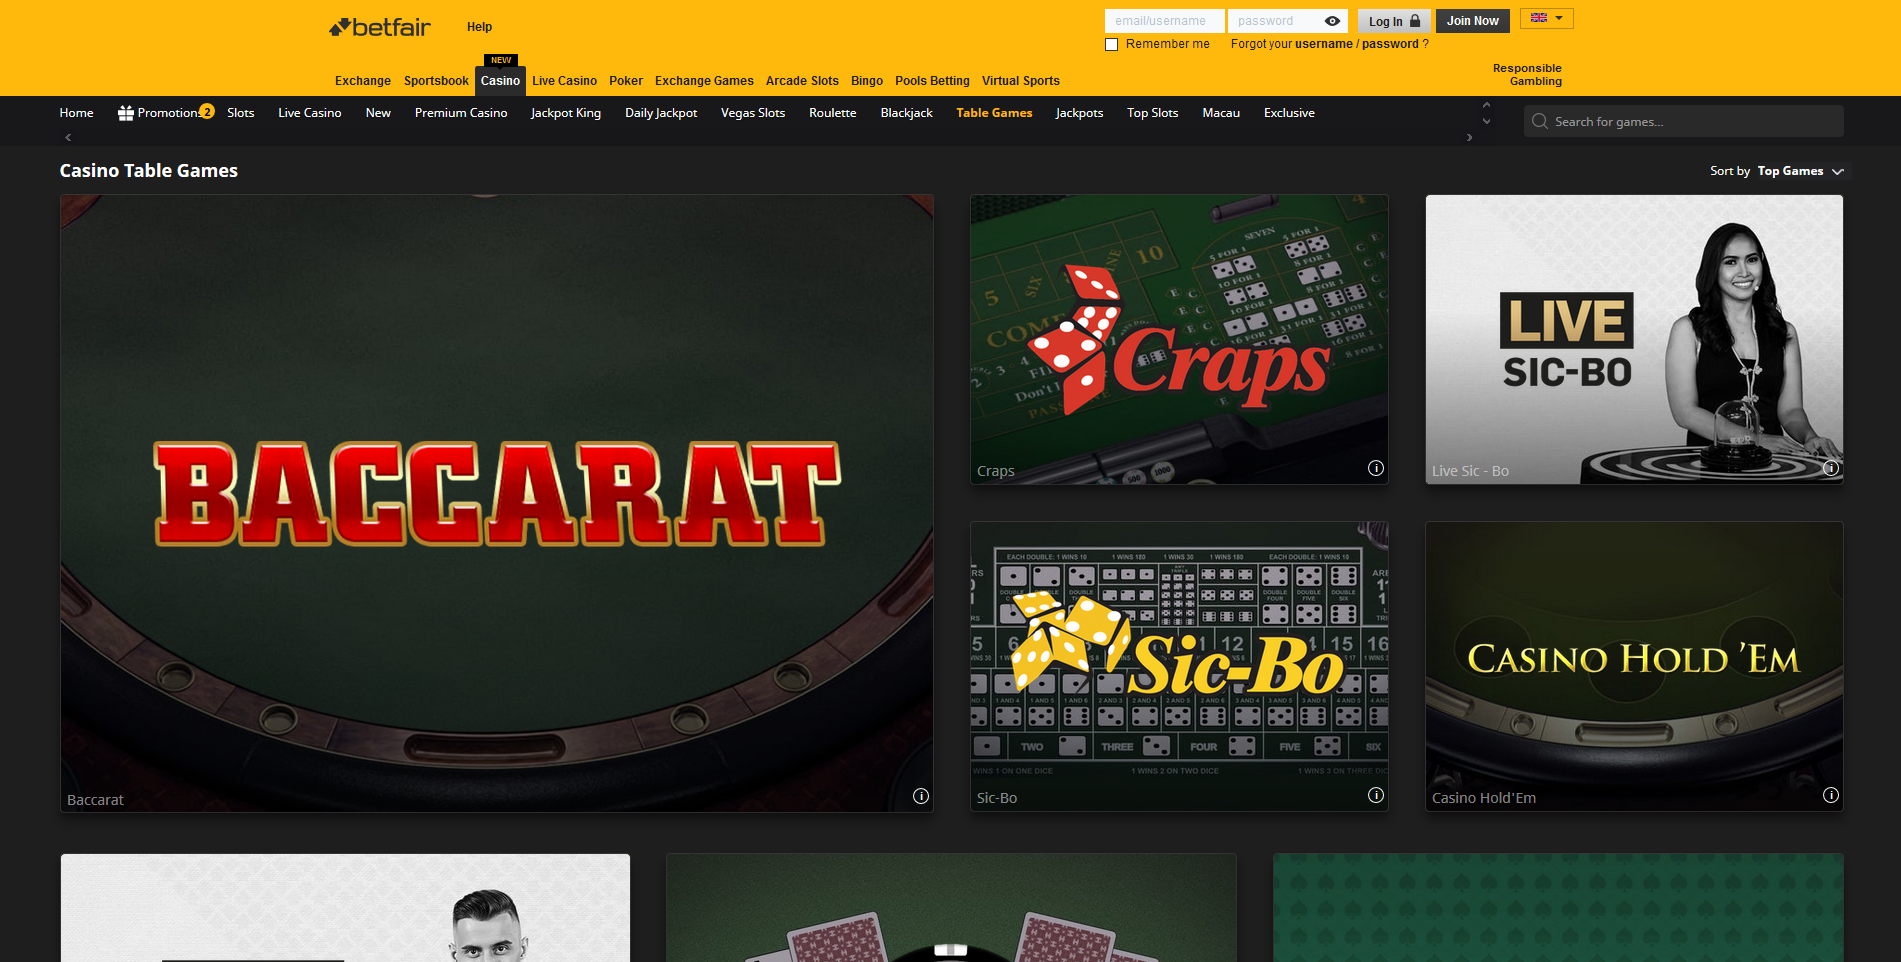 betfair table games stalo žaidimai sic bo bakara baccarat craps casino holdem pokeris